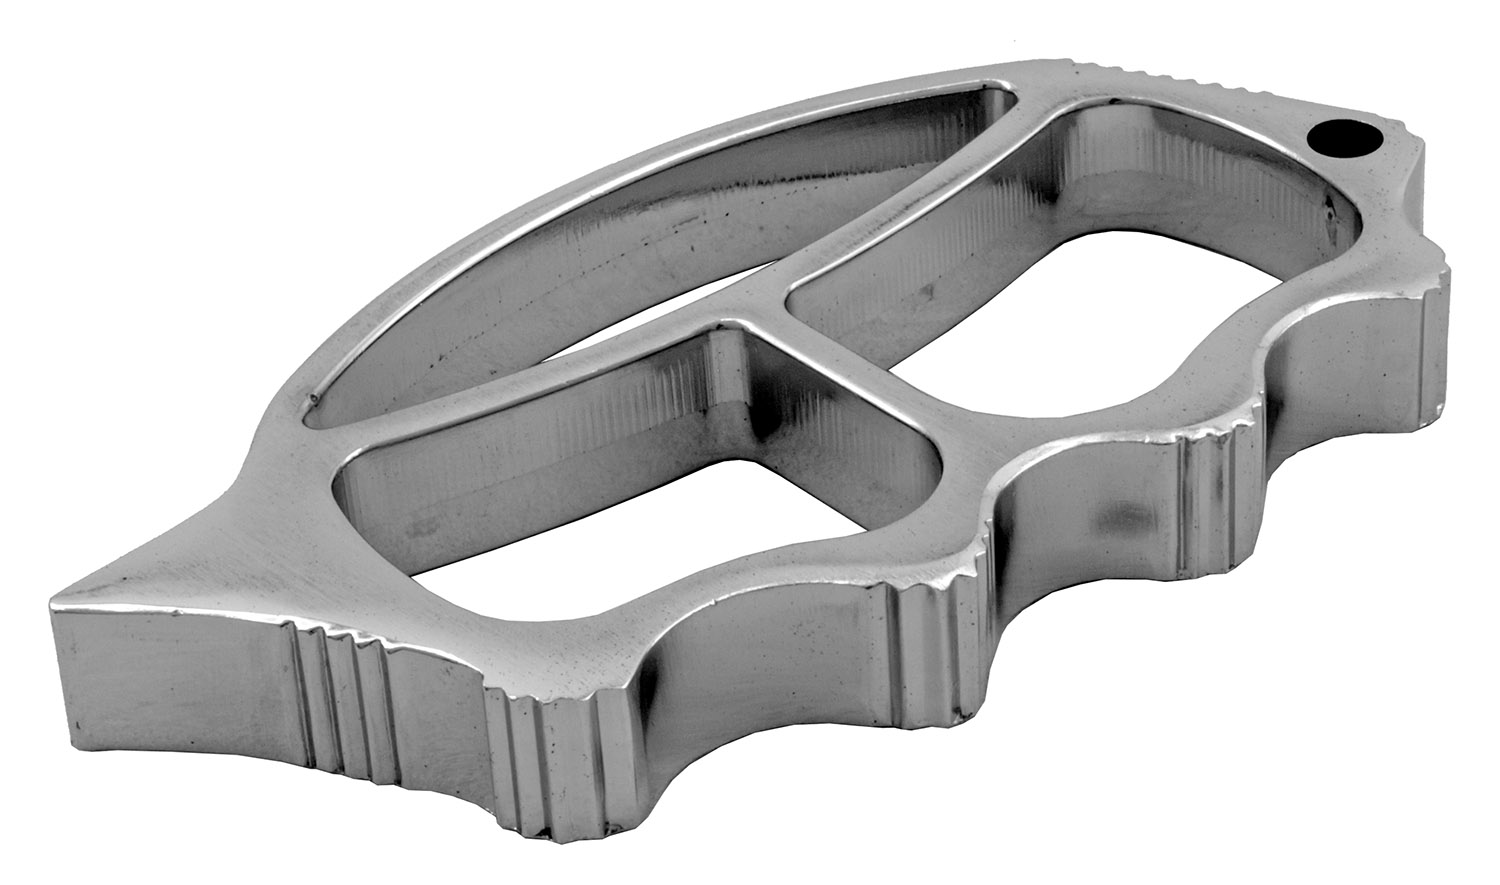 Muscle Car Guy Brass Knuckle Duster Style Paperweight - Chrome